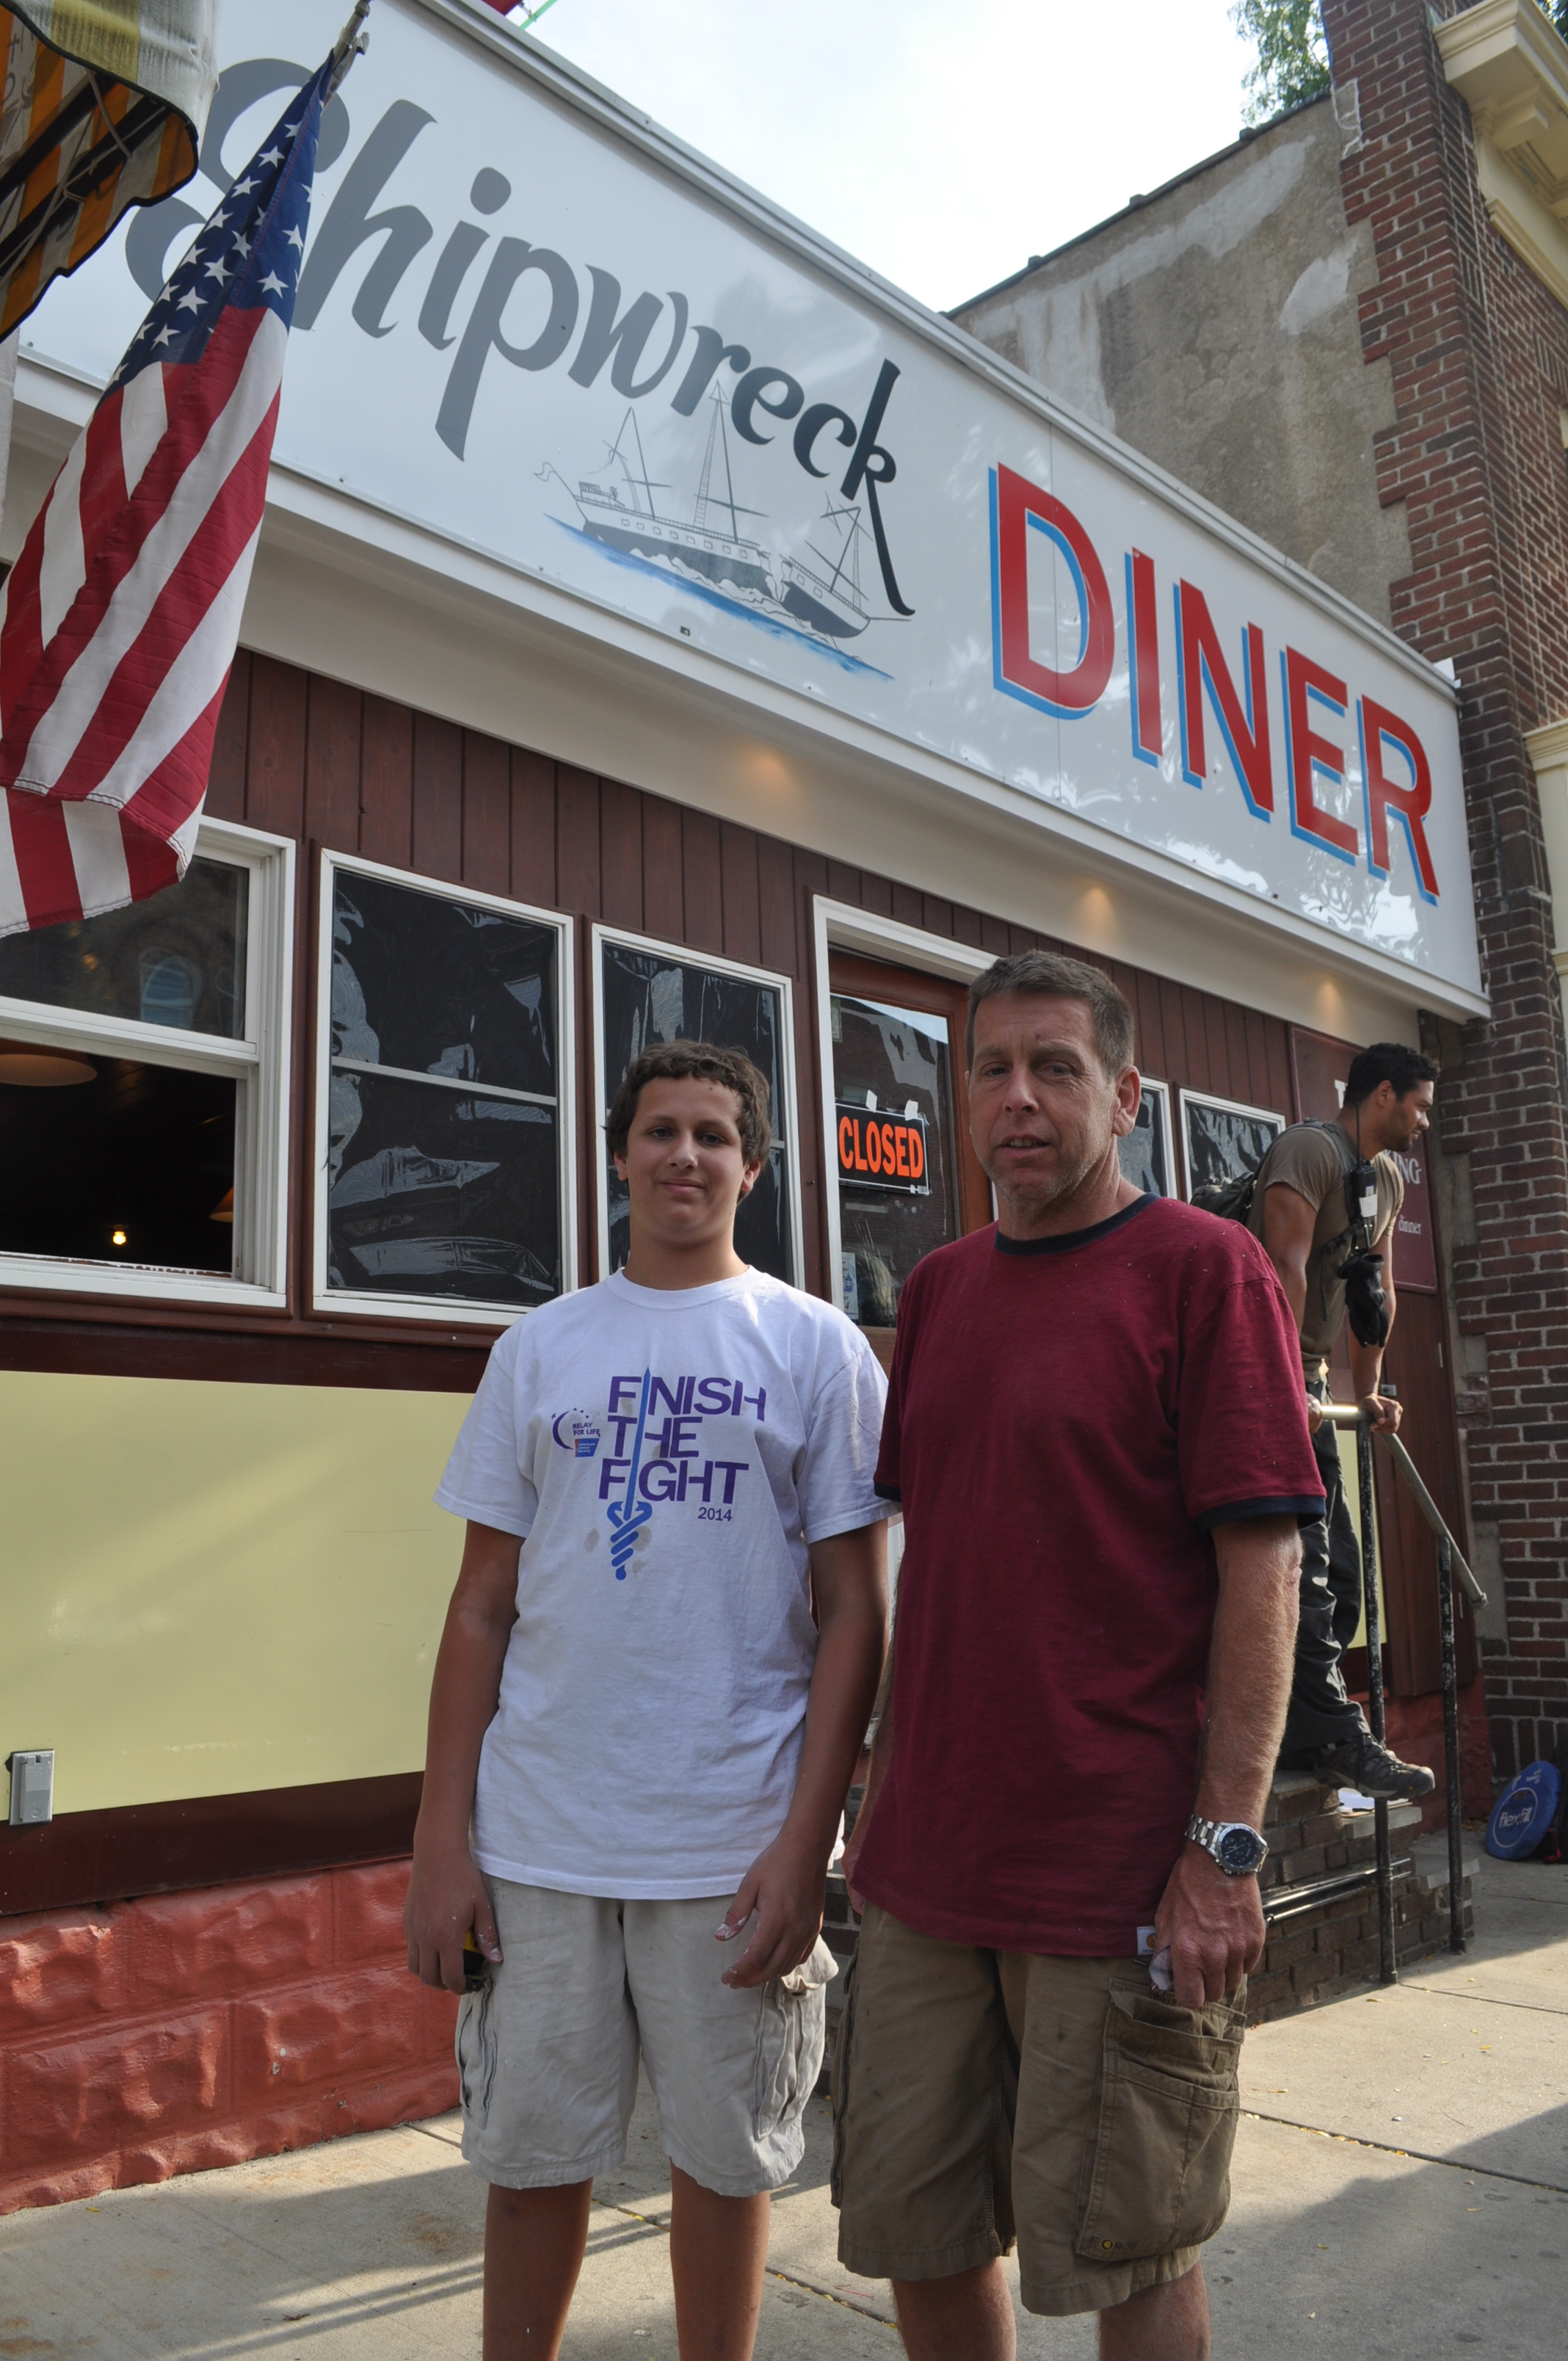 Riley Ziegler and John Ehrhardt, both of East Northport, were among the more than 200 volunteers who helped transform Tim's Shipwreck Diner.